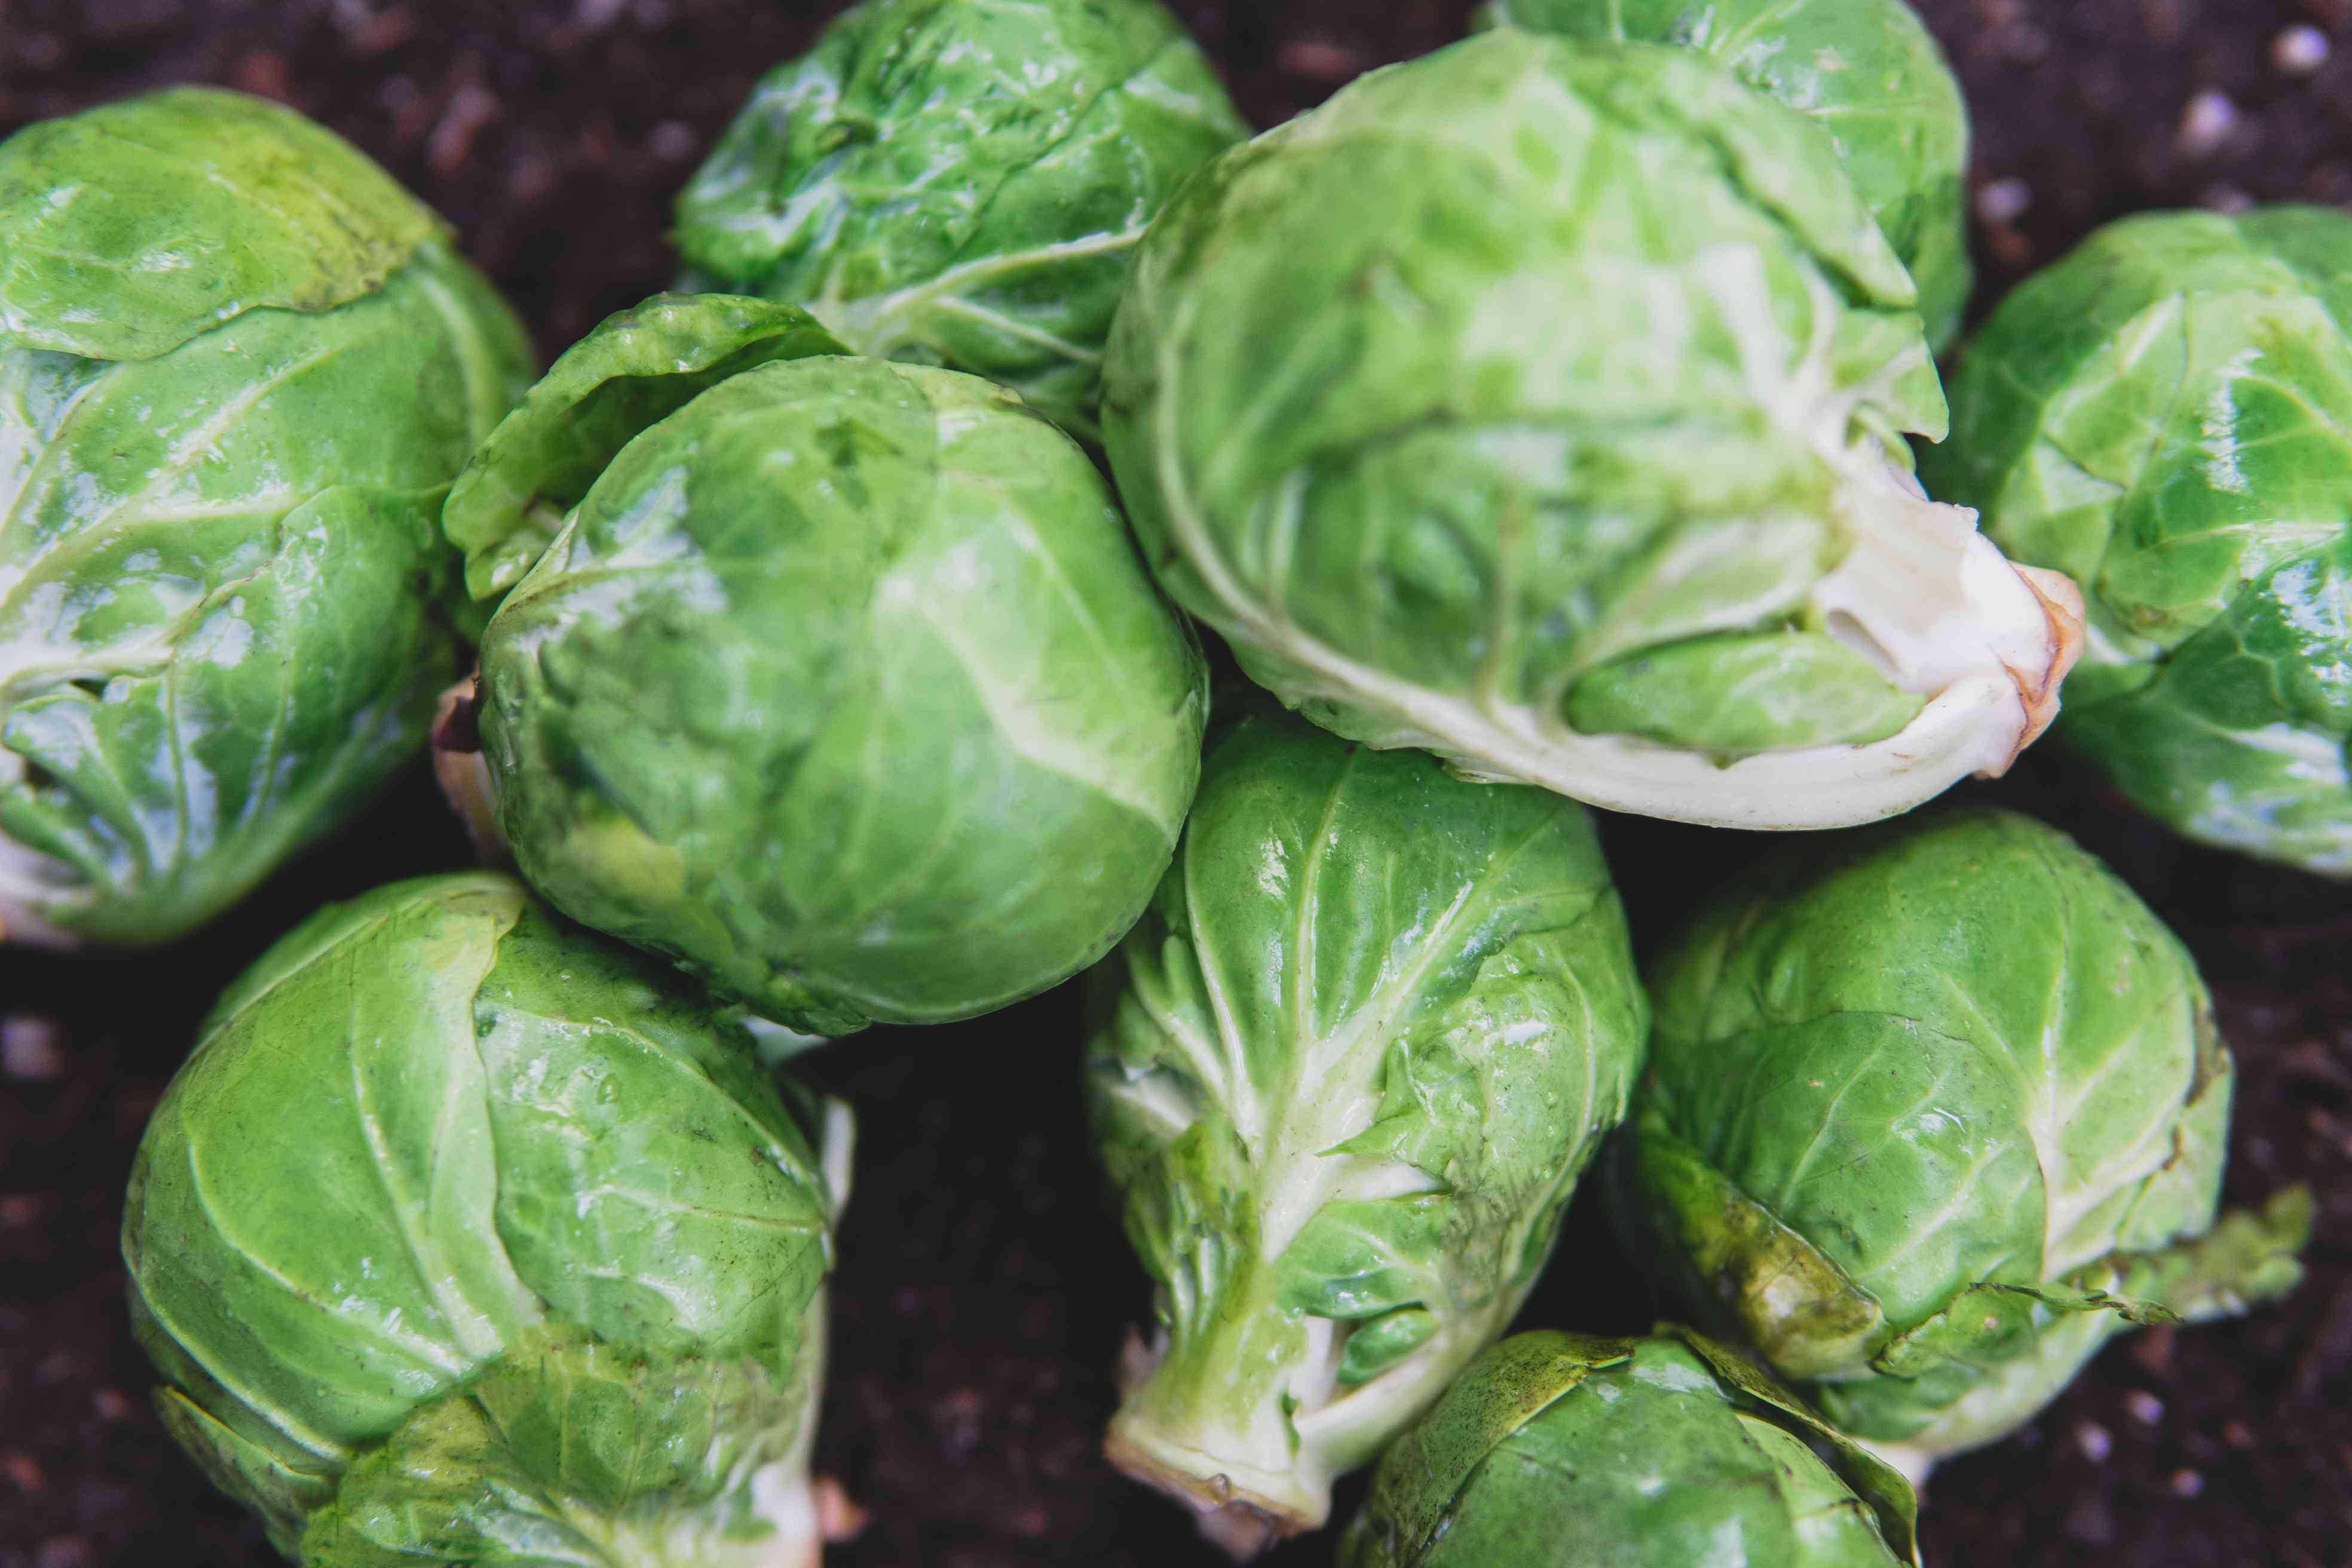 Several green brussels sprouts laying on brown dirt.